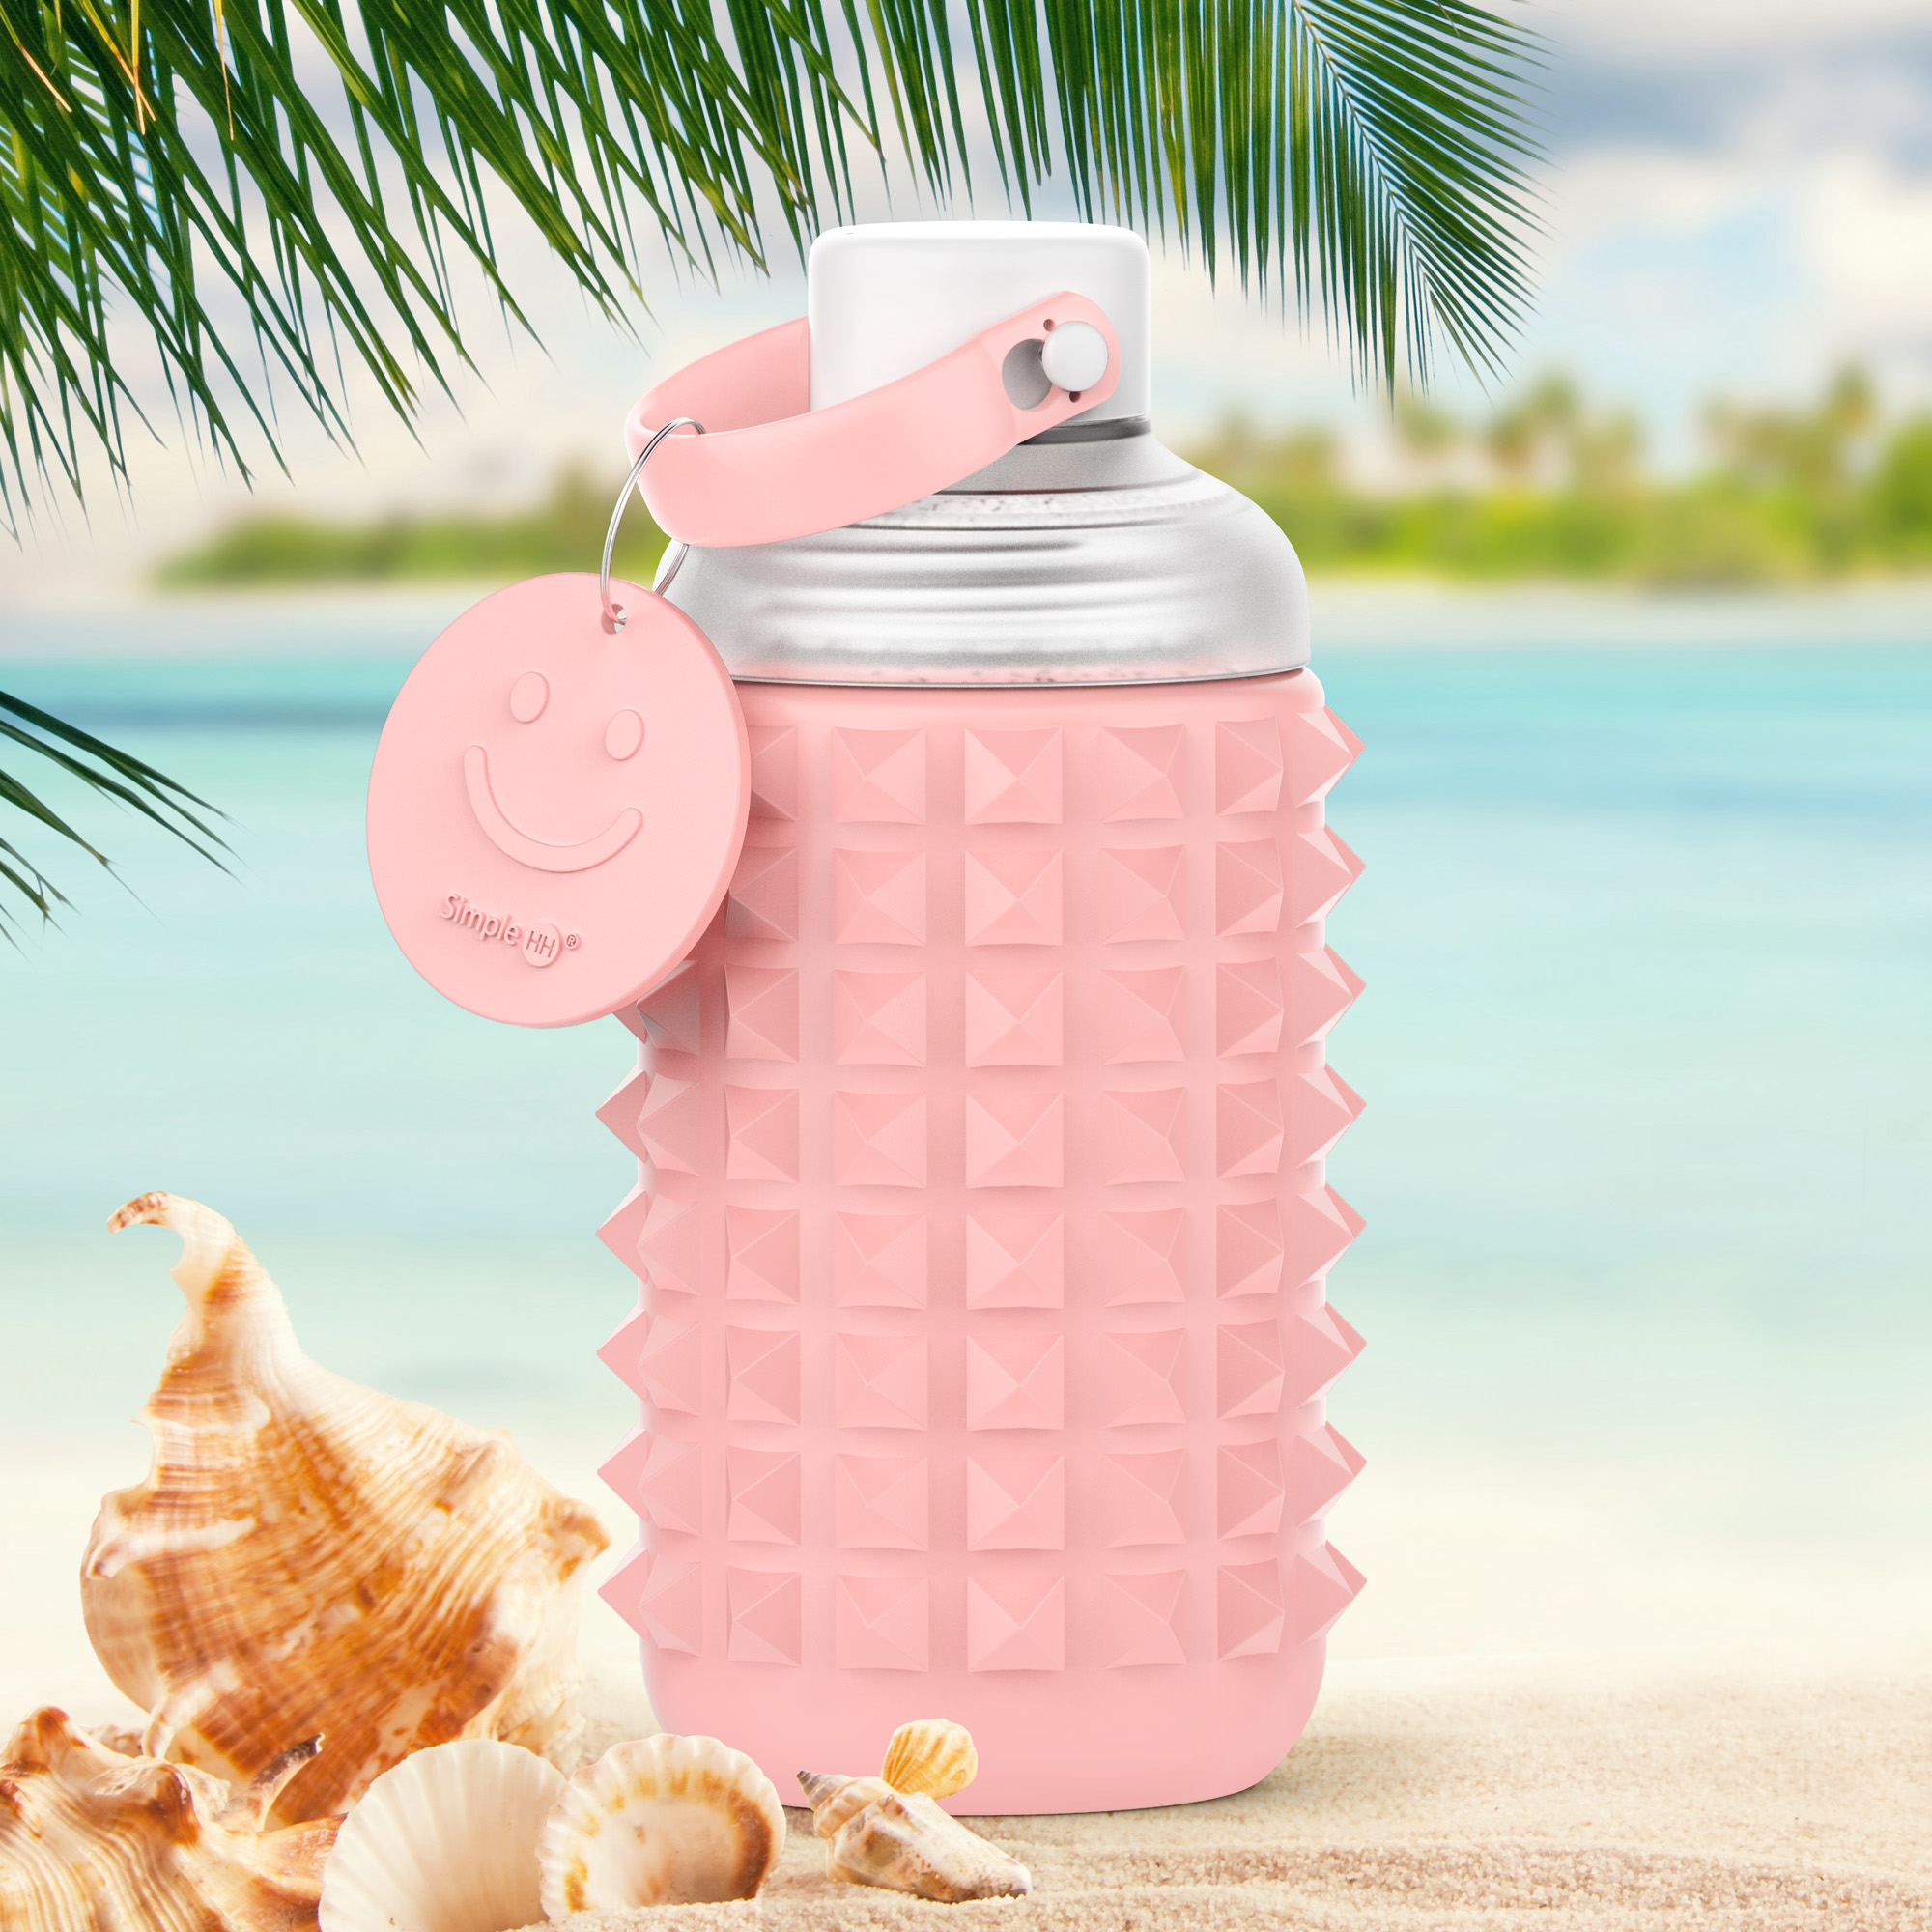 SimpleHH Double Wall Silicone Glass Water Bottle With Leak Proof Lid, Sweat Free, High Quality, Wide Mouth,|16 oz